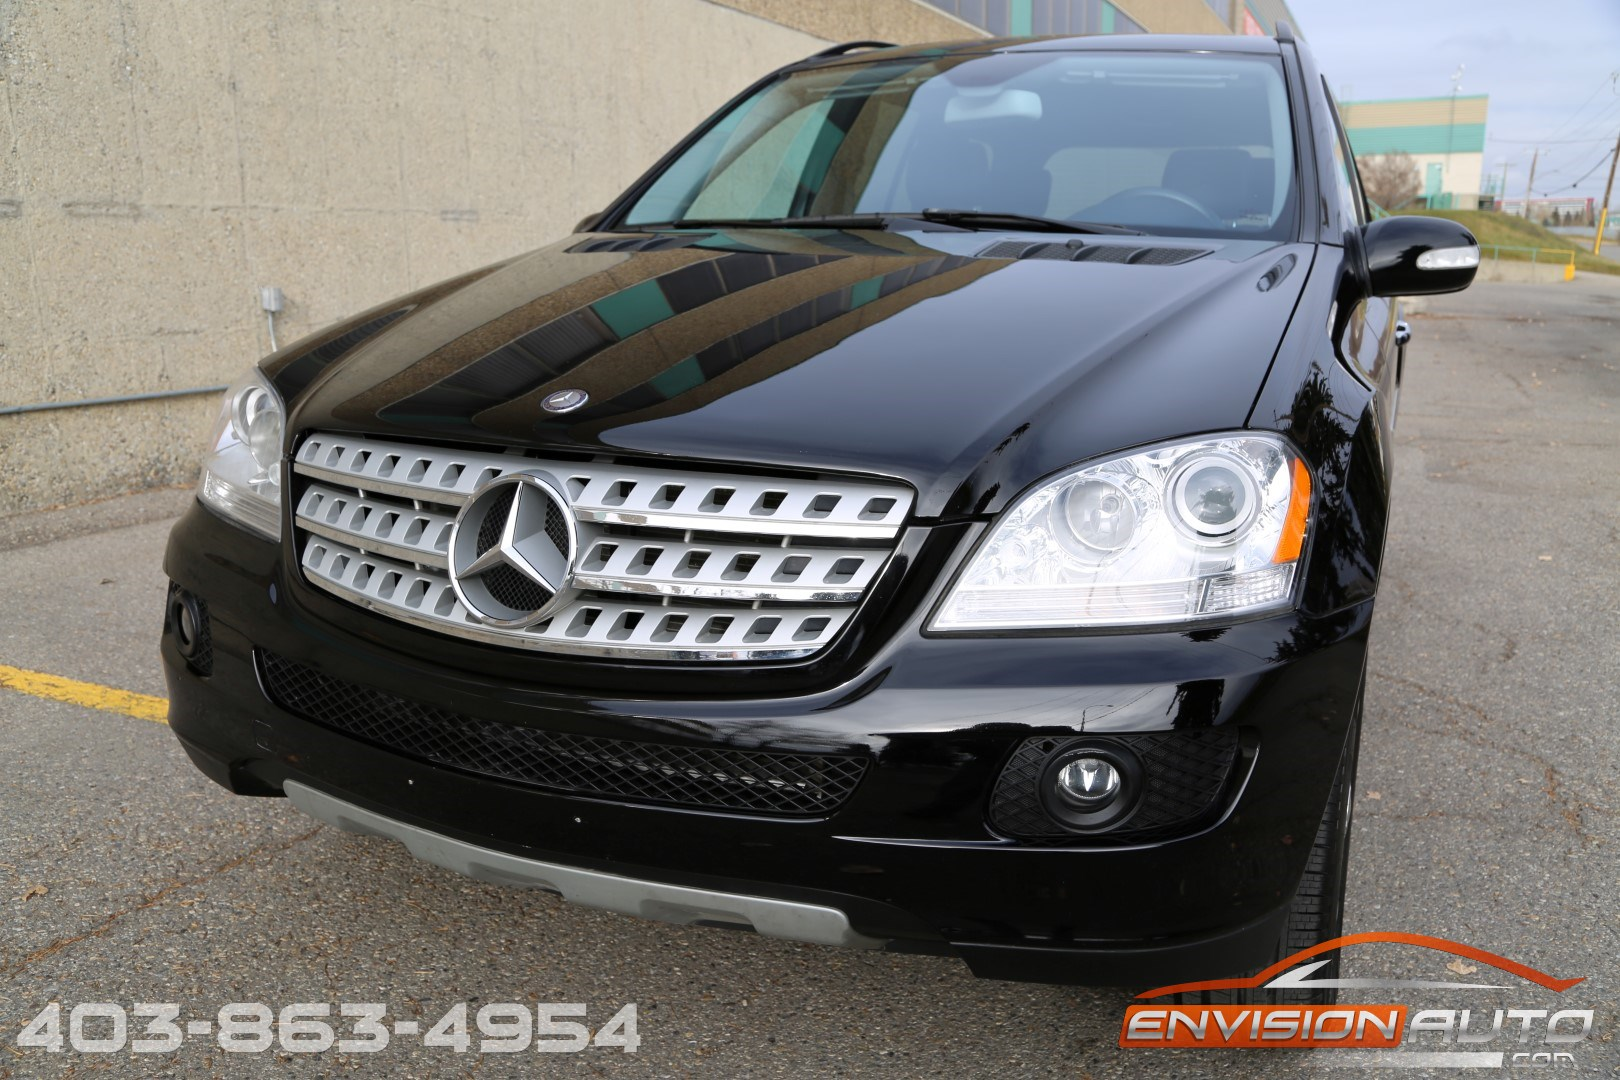 2008 mercedes benz ml350 4matic envision auto calgary. Black Bedroom Furniture Sets. Home Design Ideas